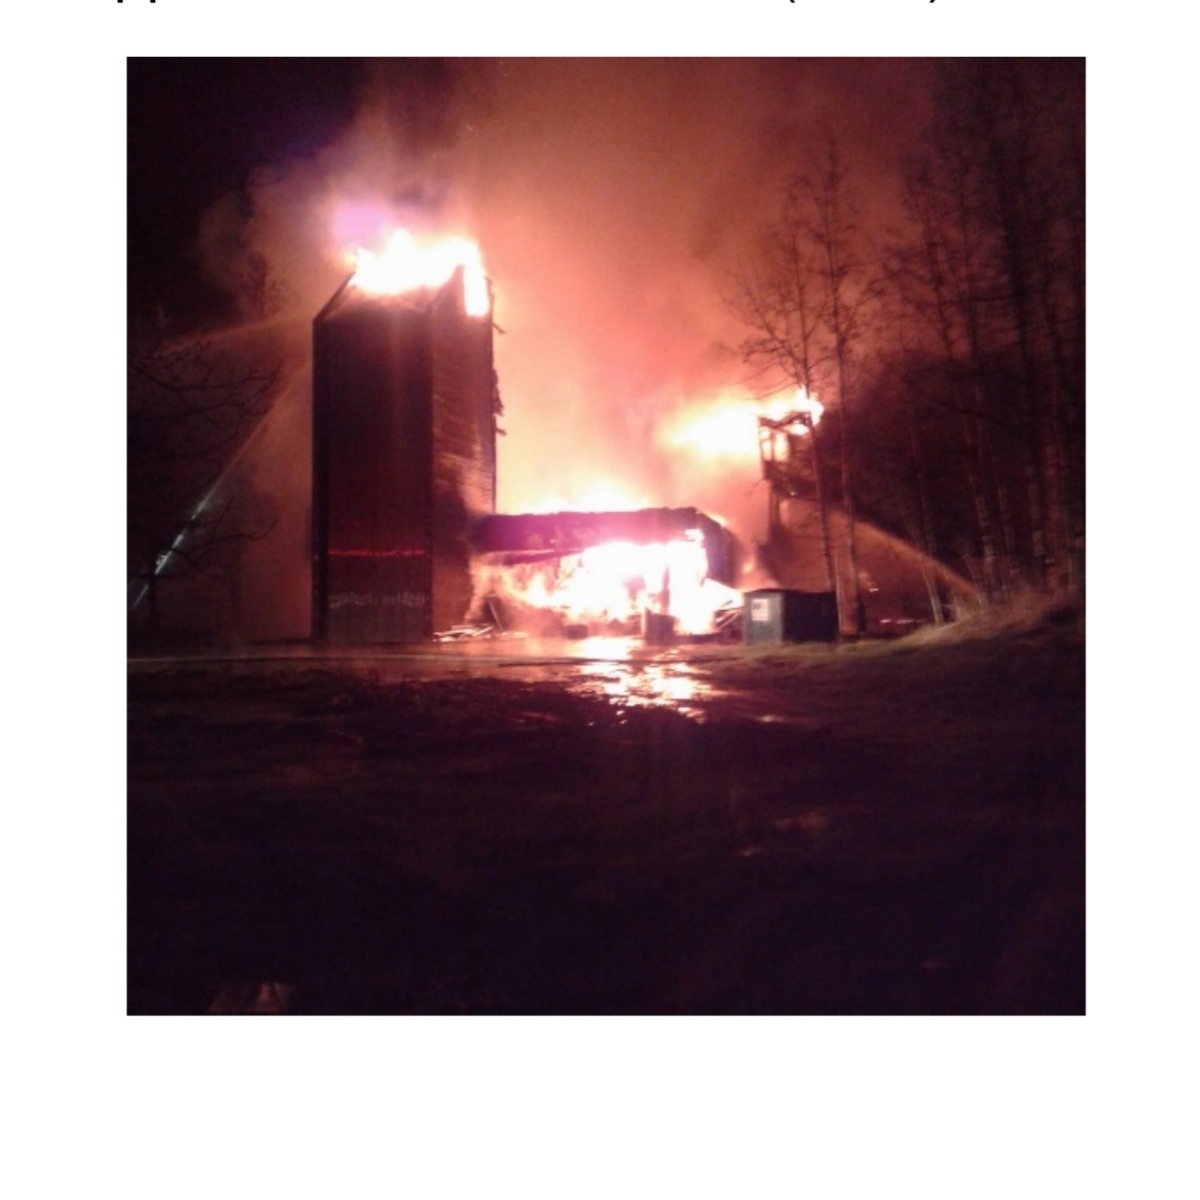 Structure fire under investigation in Pouce Coupe...